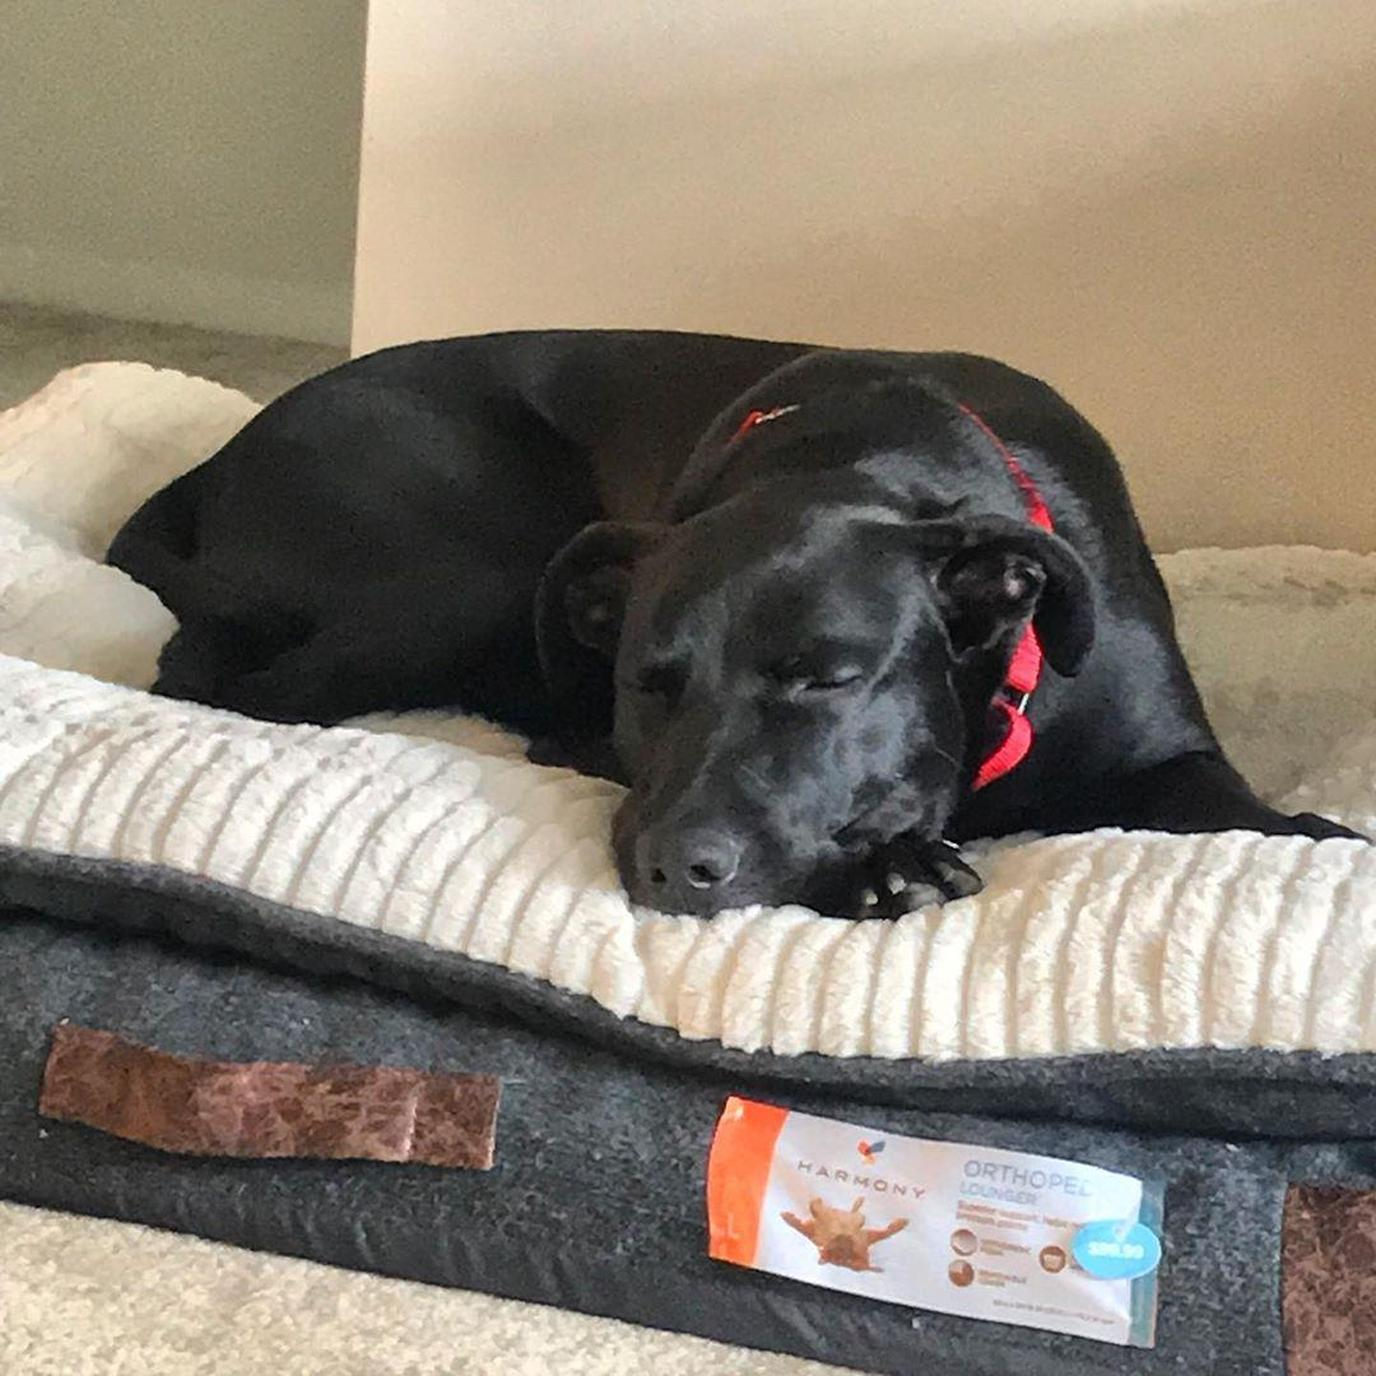 This dog loves his dog bed.